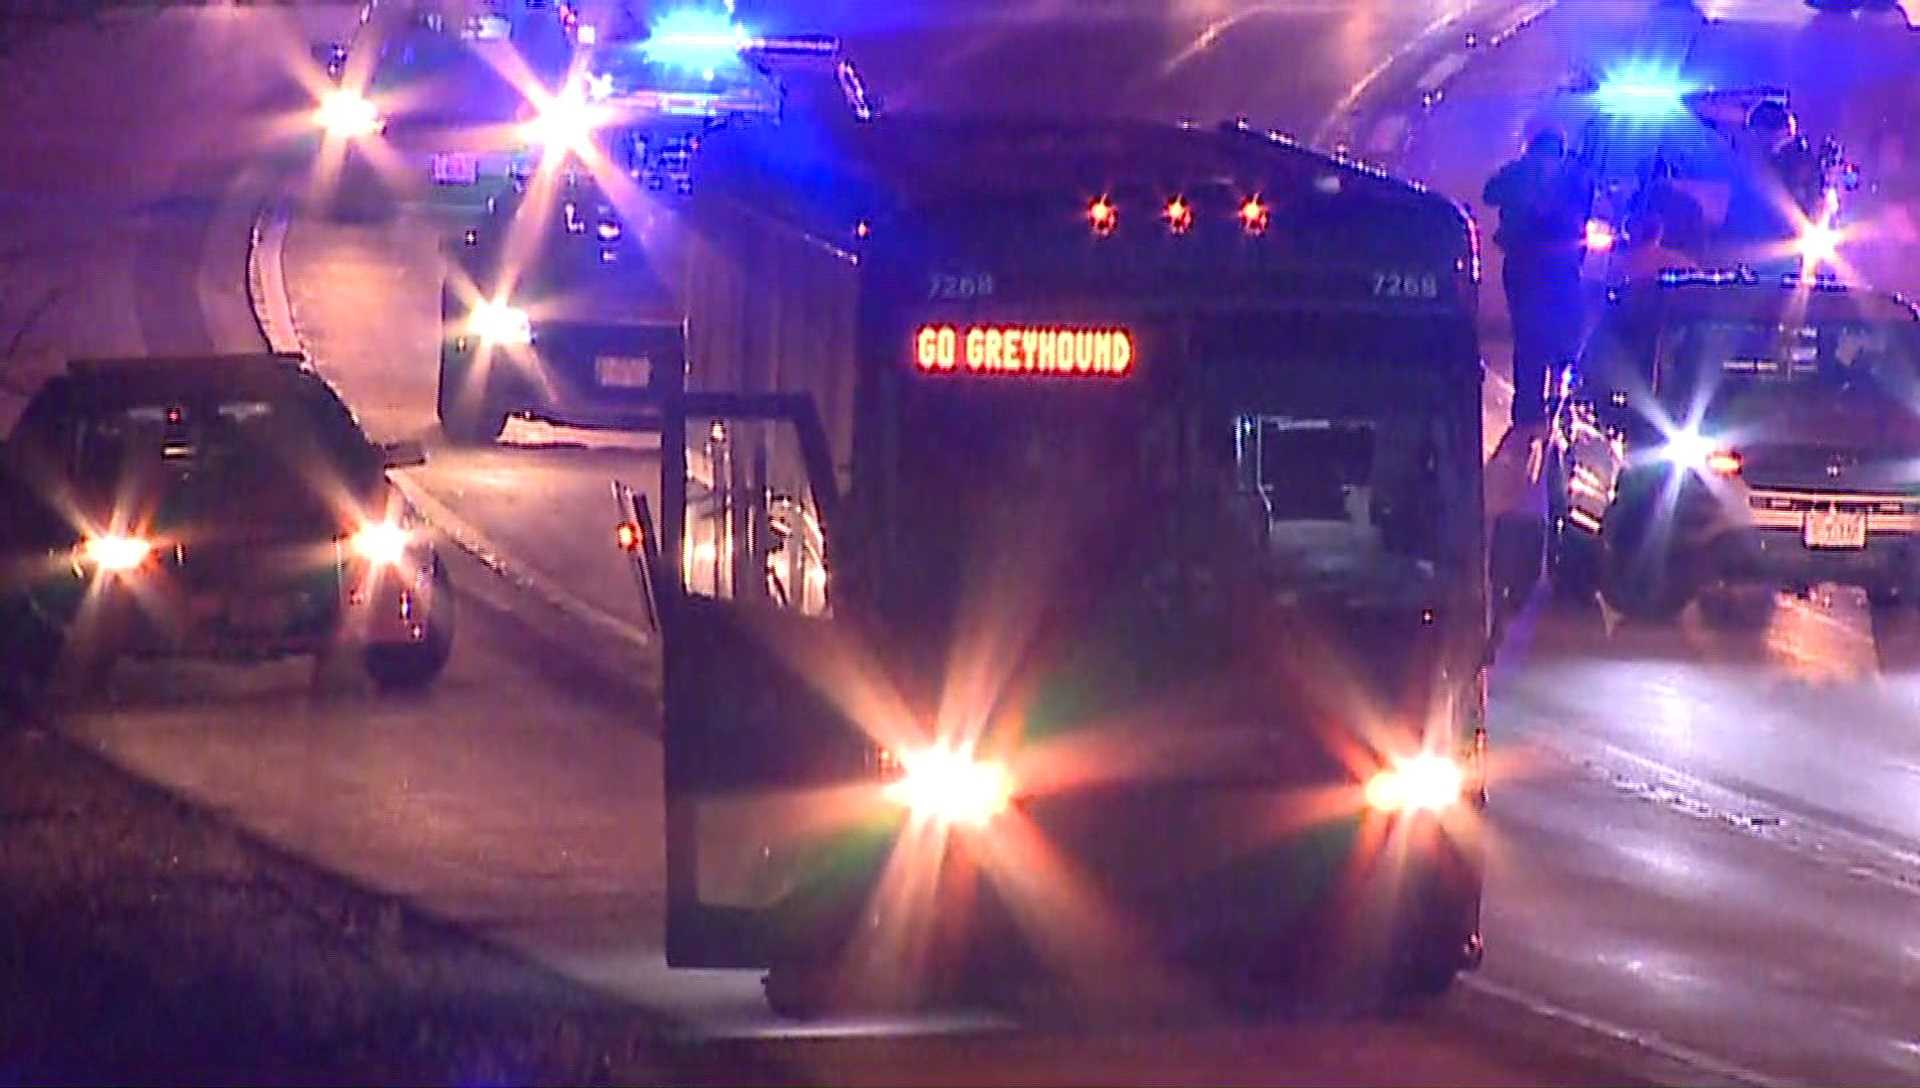 Man arrested; reportedly threatened to kill people on I-94 bus